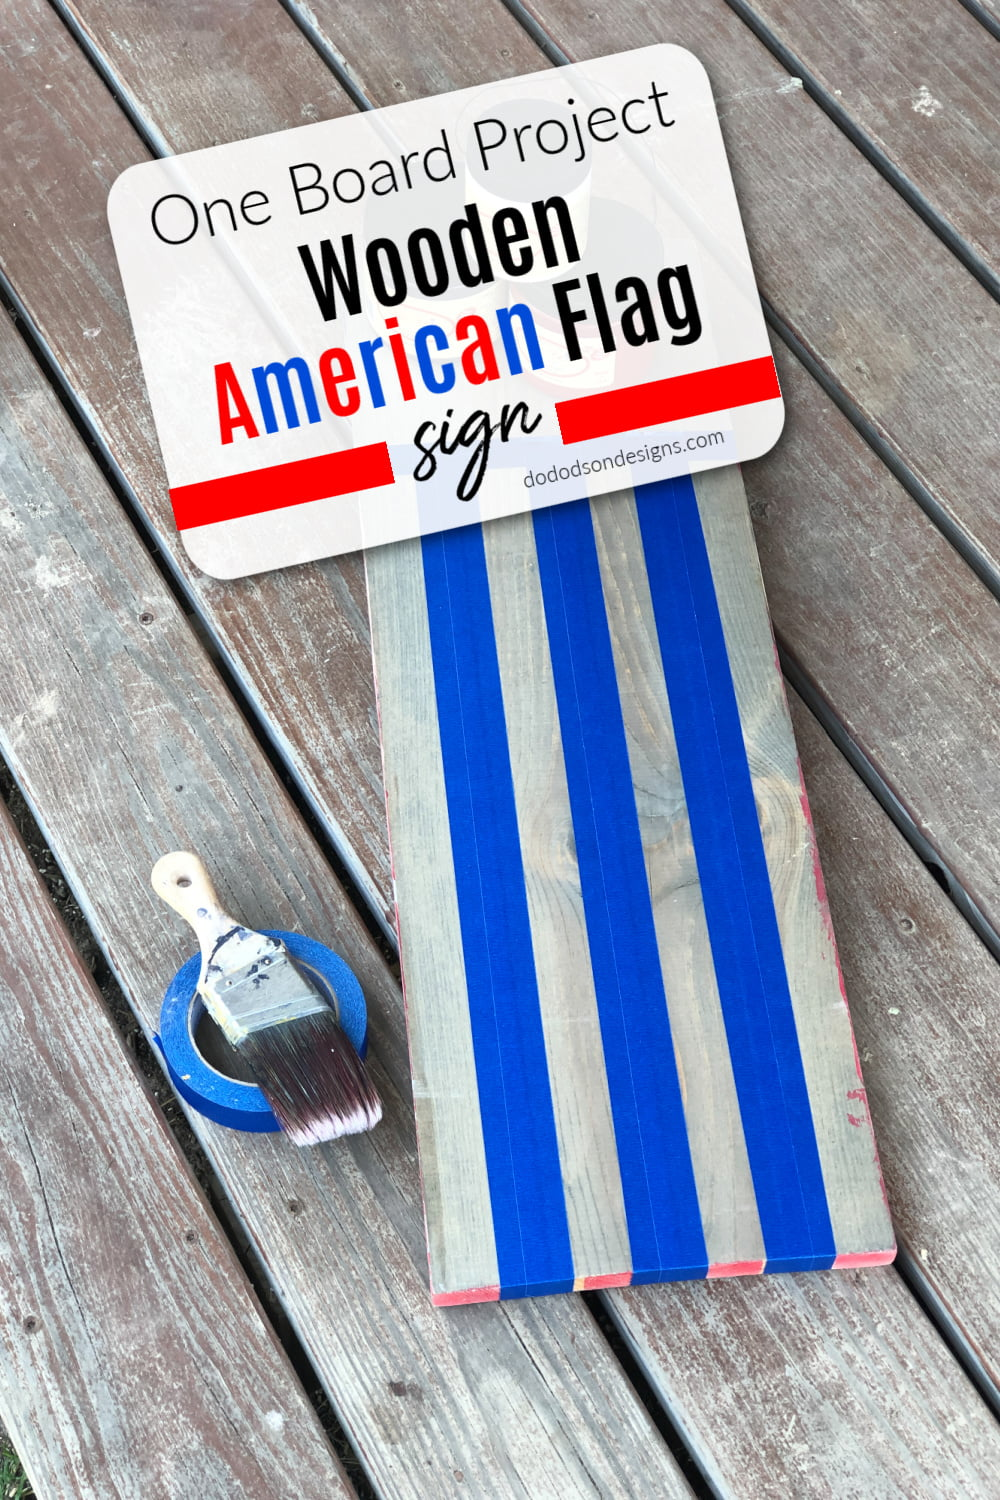 Wooden American Flag Sign - 1 Board Project